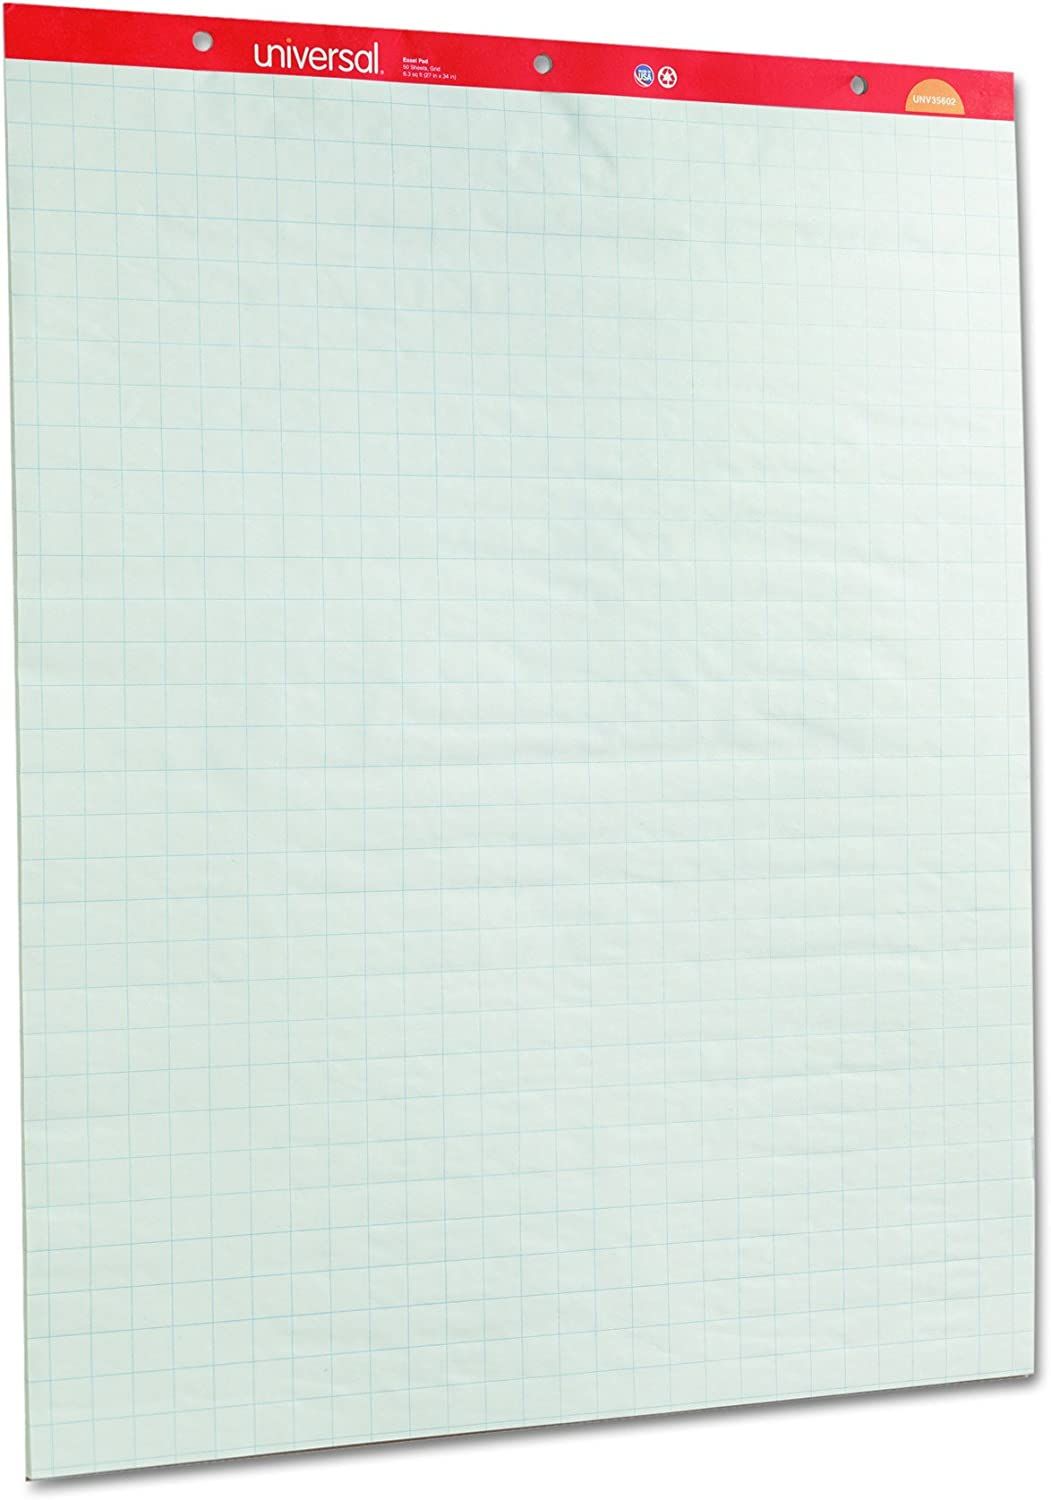 45600 Universal One Perforated Easel Pad 27 x 34